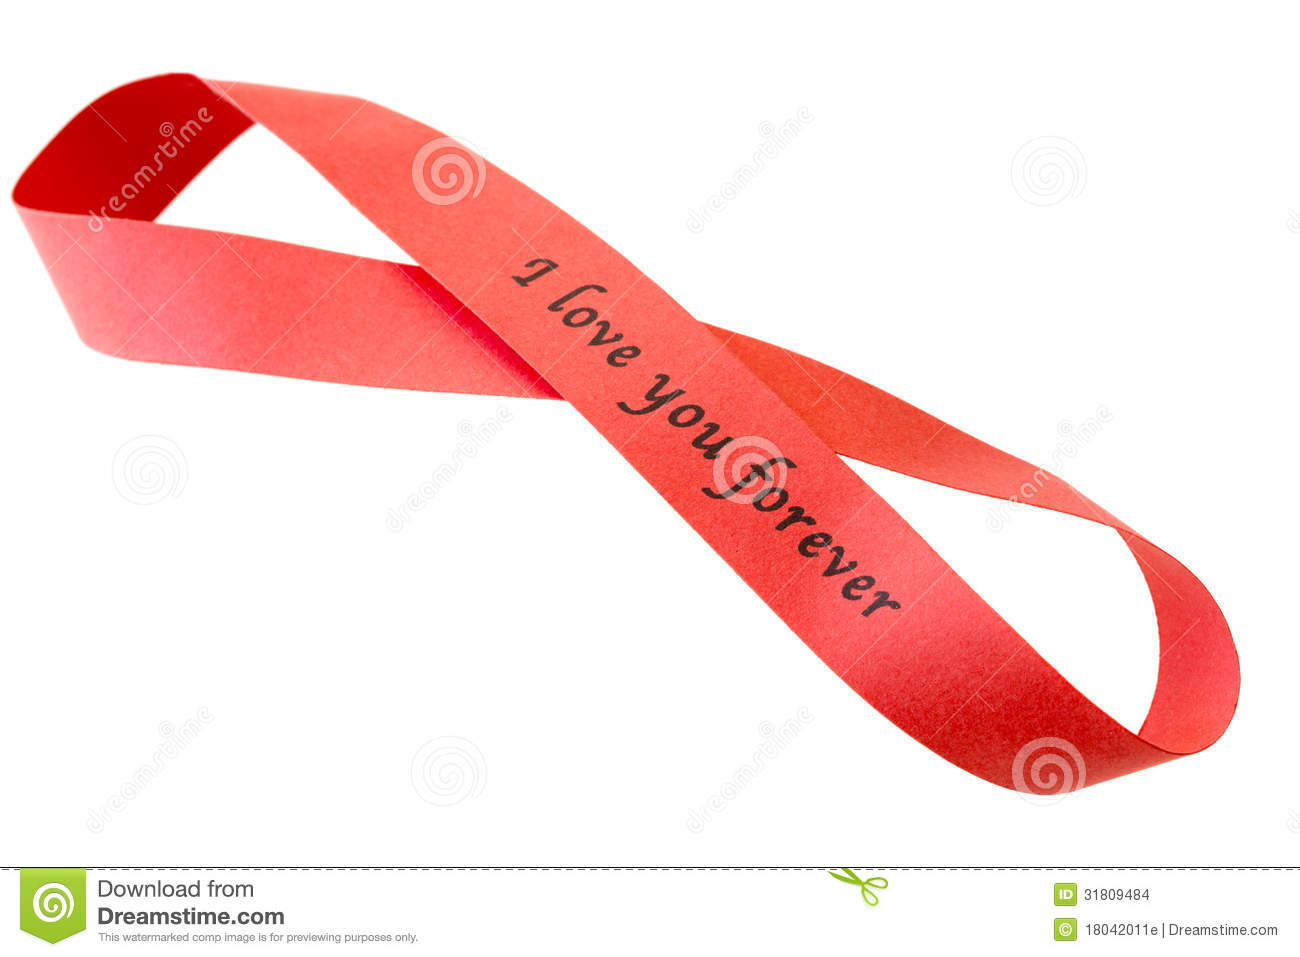 """'I love you forever"""" sigh on red tape"""